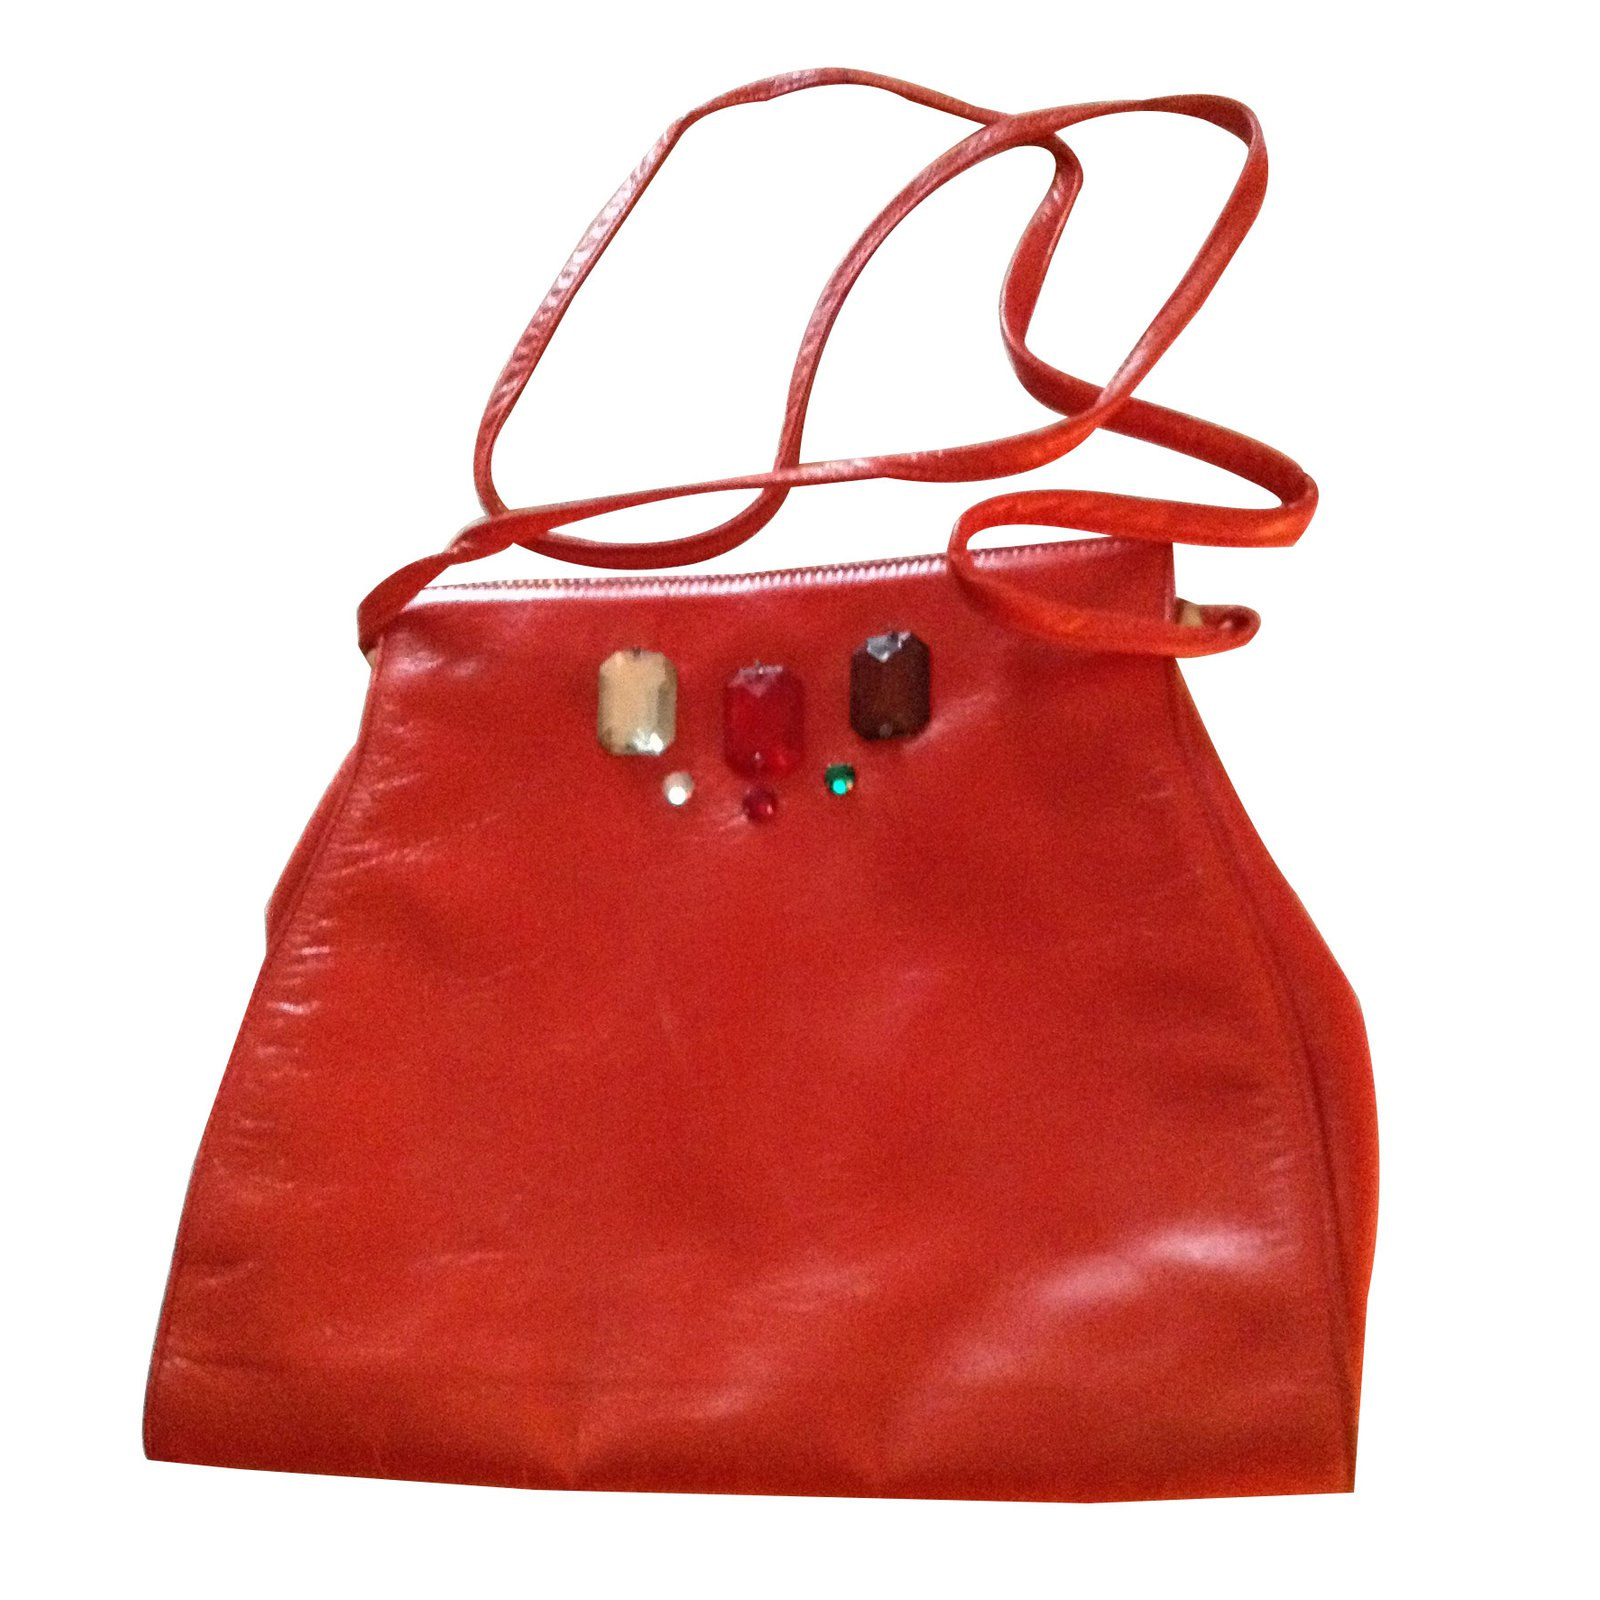 Charles Jourdan Handbags Leather Red Ref 7368